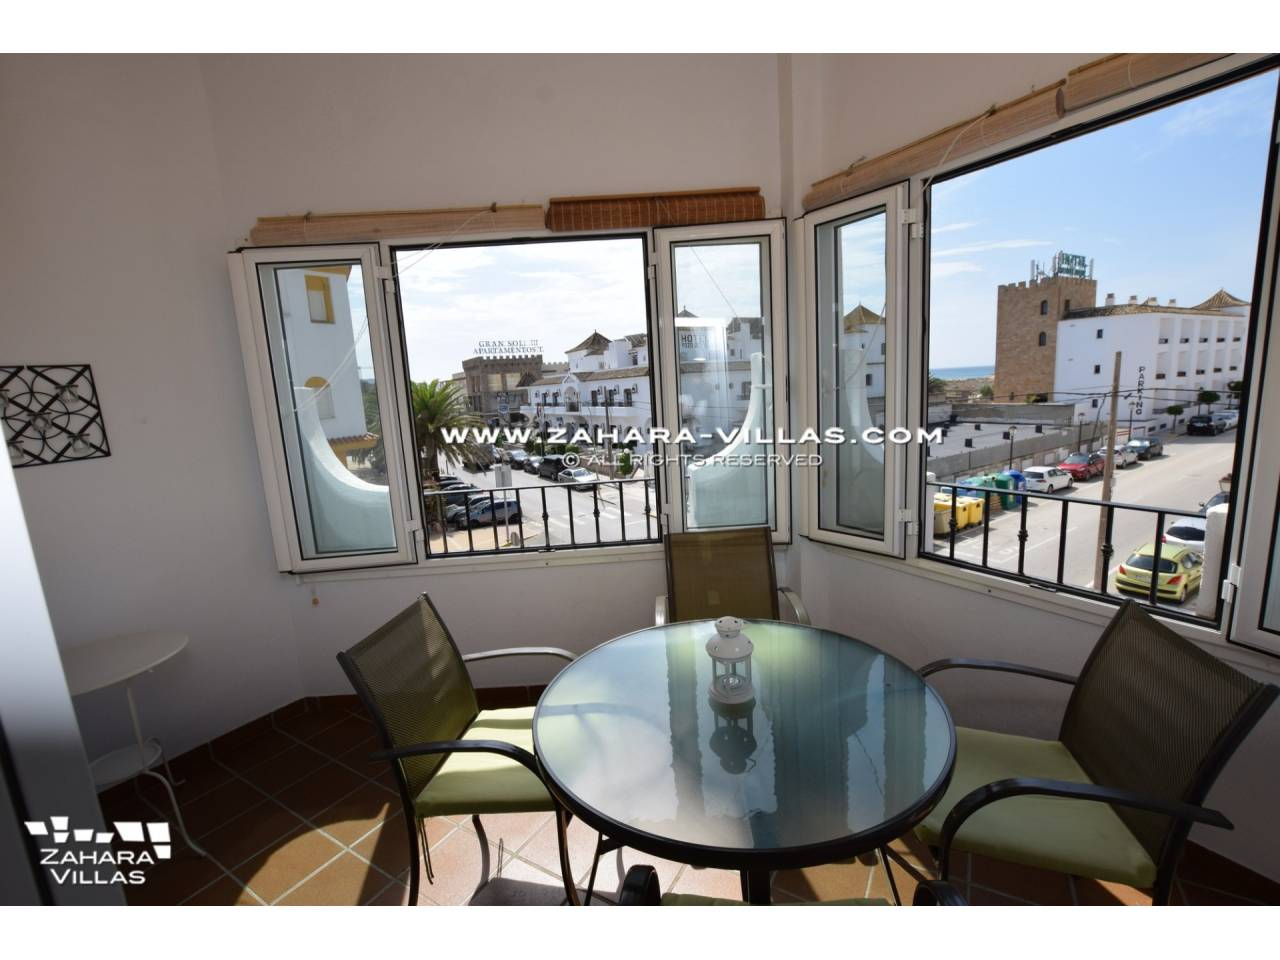 Imagen 29 de Amazing Apartment for sale in Zahara de los Atunes